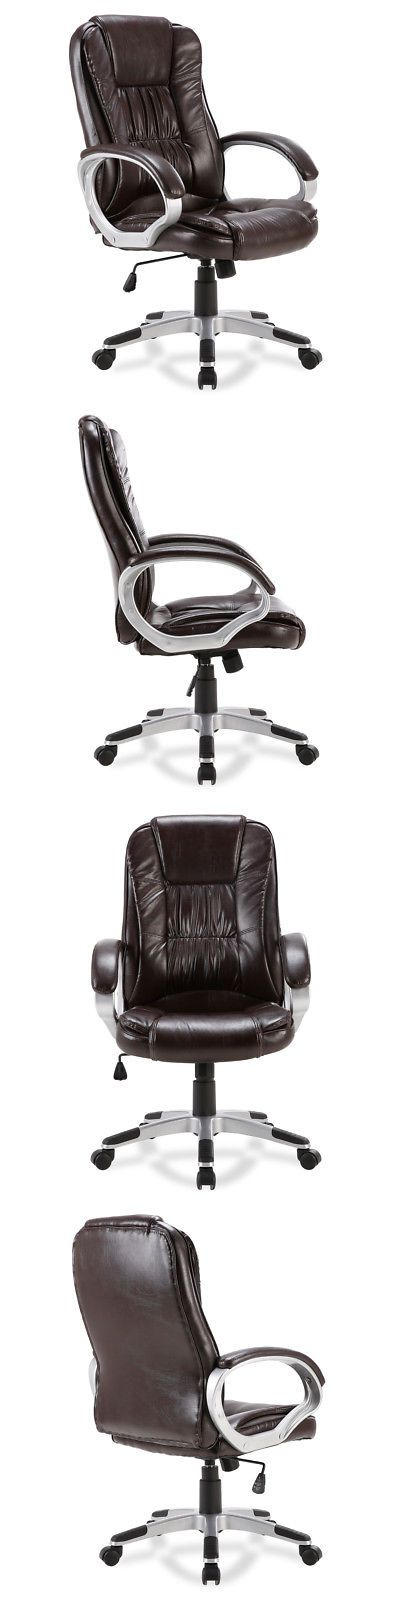 Office Furniture: Executive Ergonomic Office Chair Pu Leather High Back Computer Desk Task (Mocha) -> BUY IT NOW ONLY: $69.95 on eBay!